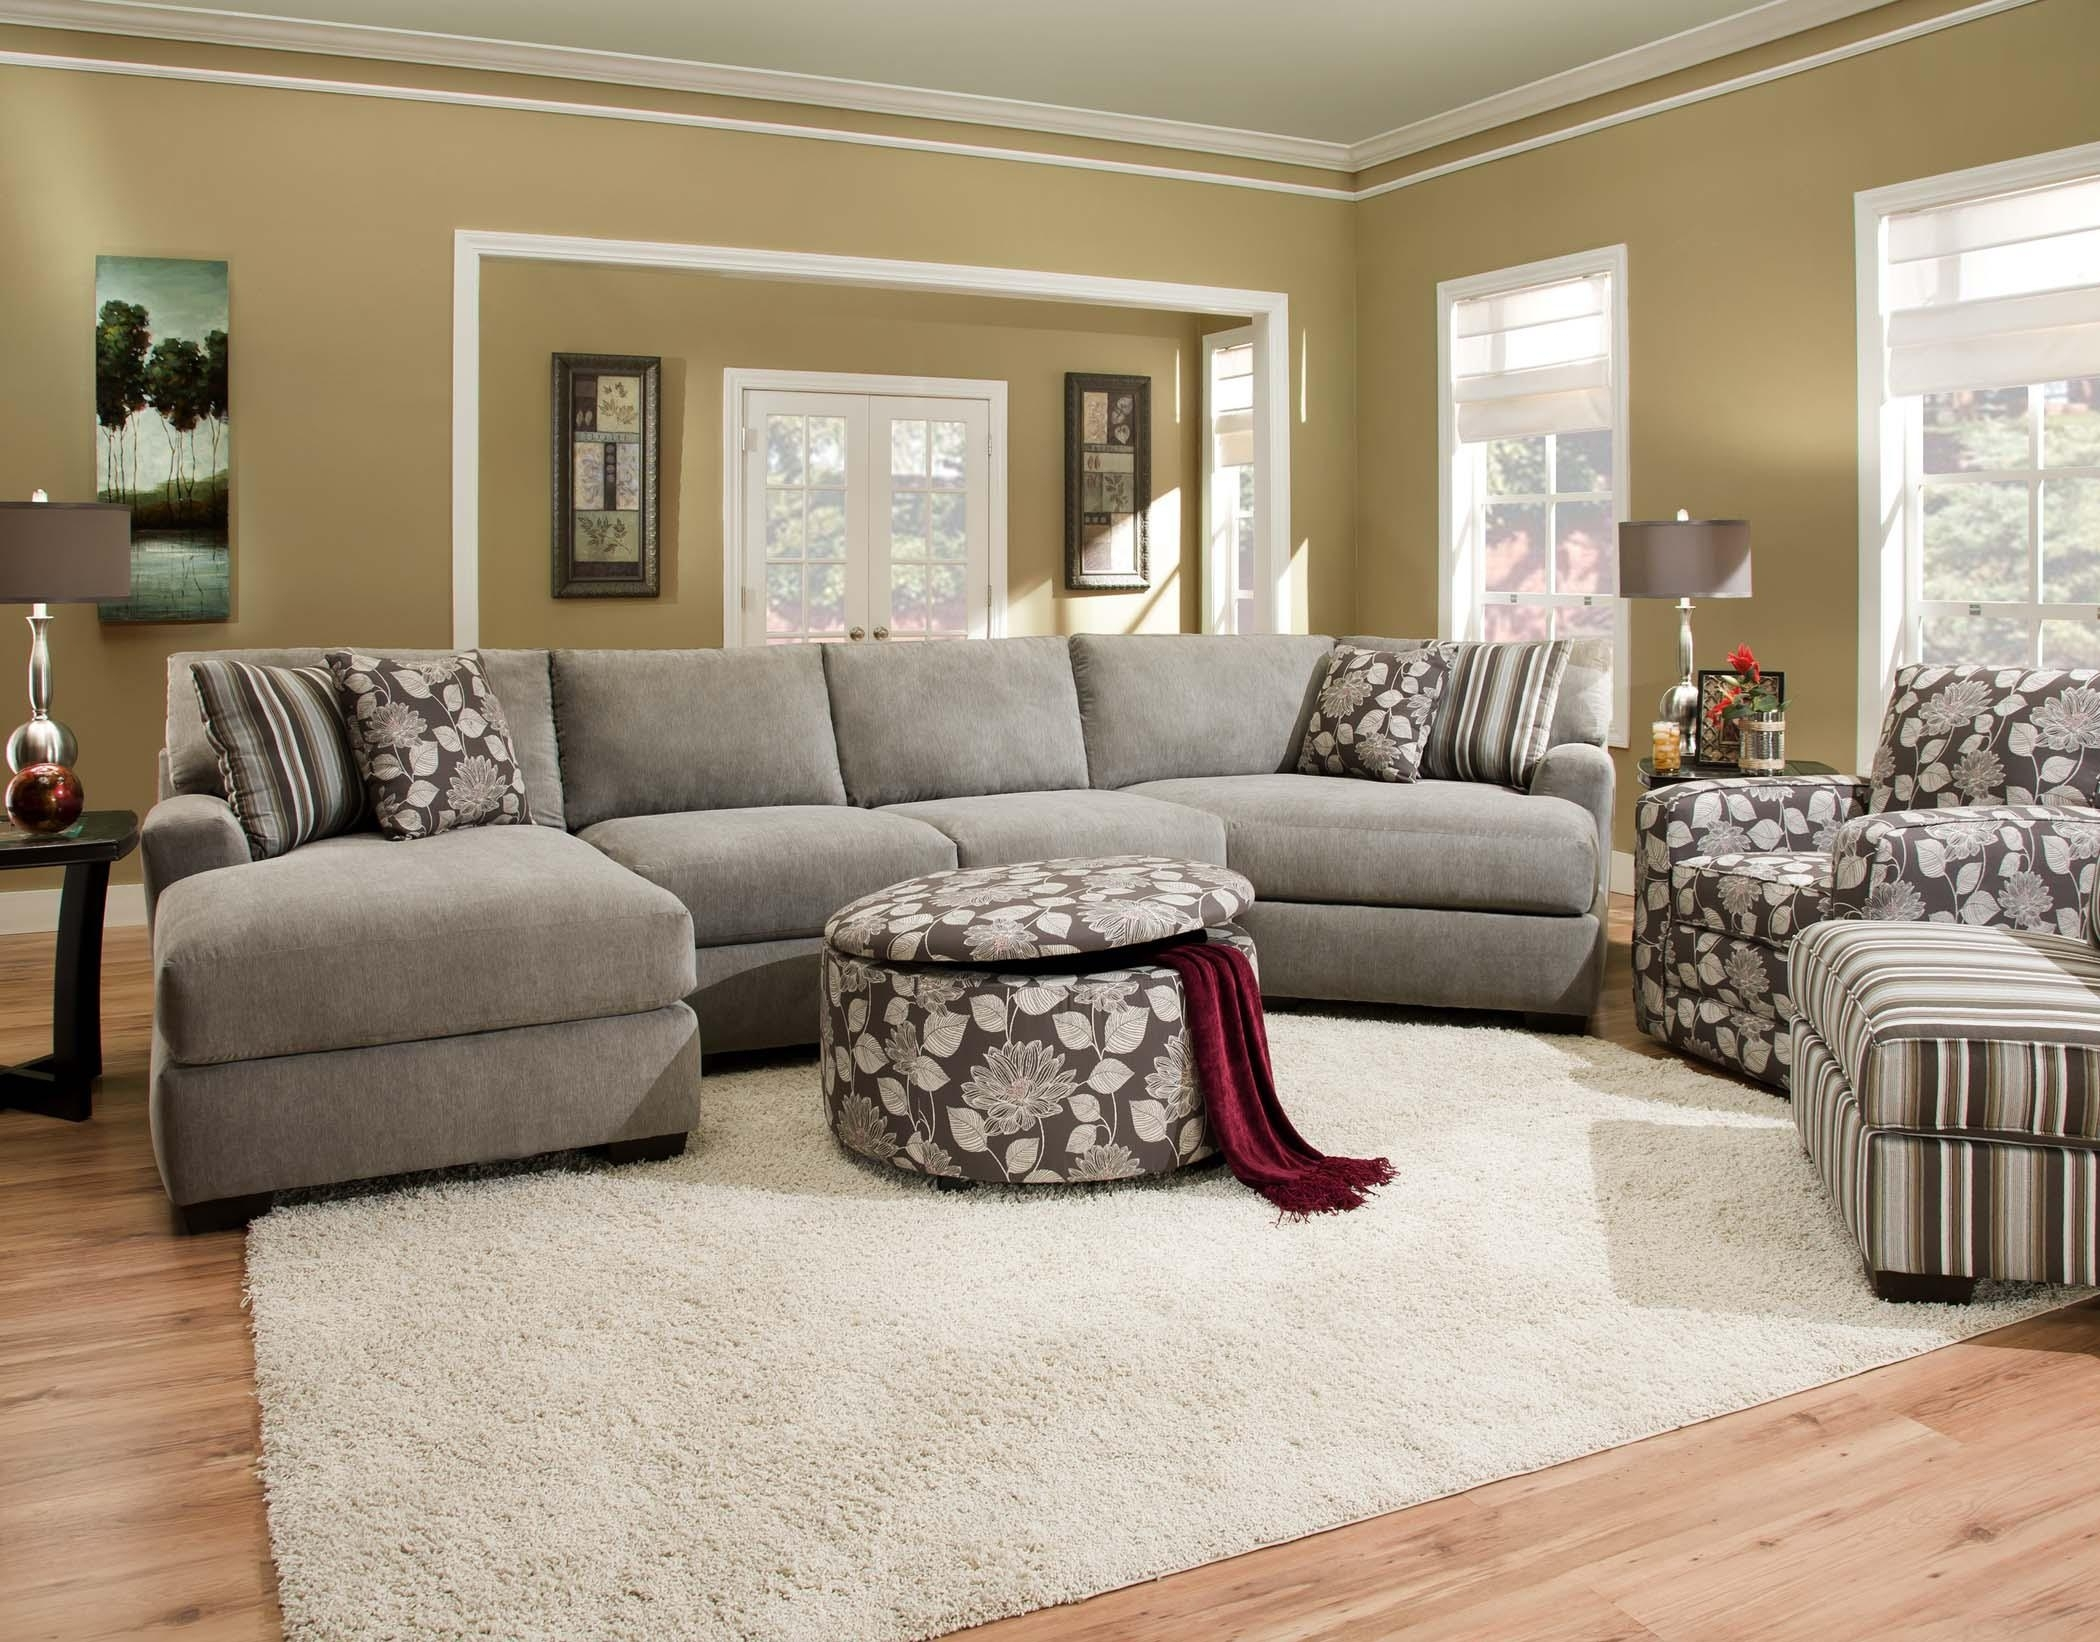 Corinthian 29A0 Sectional Sofa With 4 Seats | Standard Furniture With Josephine 2 Piece Sectionals With Raf Sofa (Image 6 of 25)